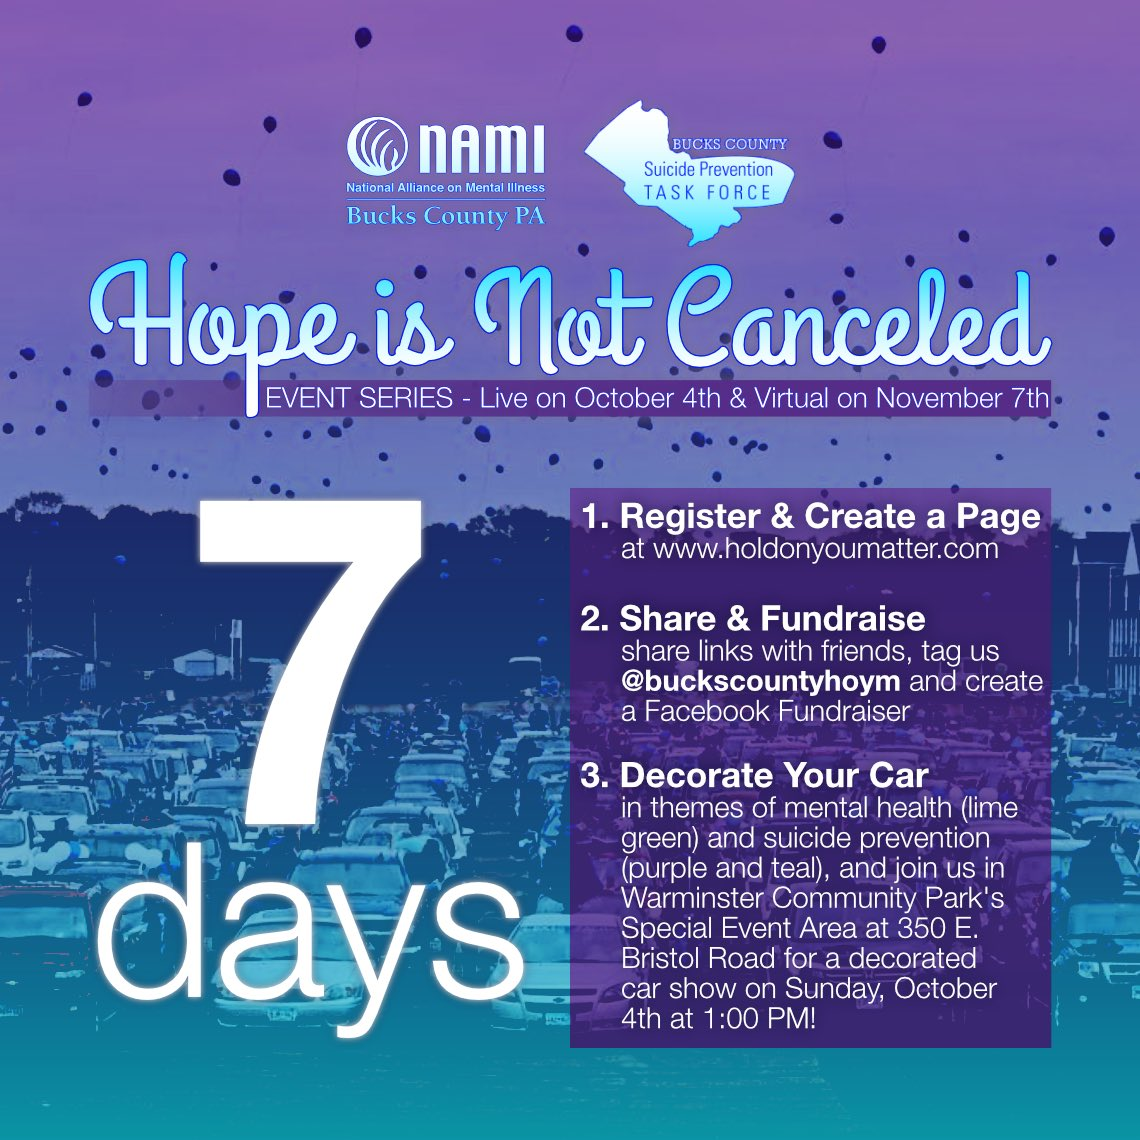 Only 1 more week! Register at https://t.co/1smRRvwHtM and donate to aid suicide prevention in Bucks County! Let's show that #HopeIsNotCanceled in Bucks County! #buckscountypa  #holdonyoumatter #hope #mentalhealth #suicideprevention #suicideawareness #decoratedcarshow #parade https://t.co/ssfOGcXGUn